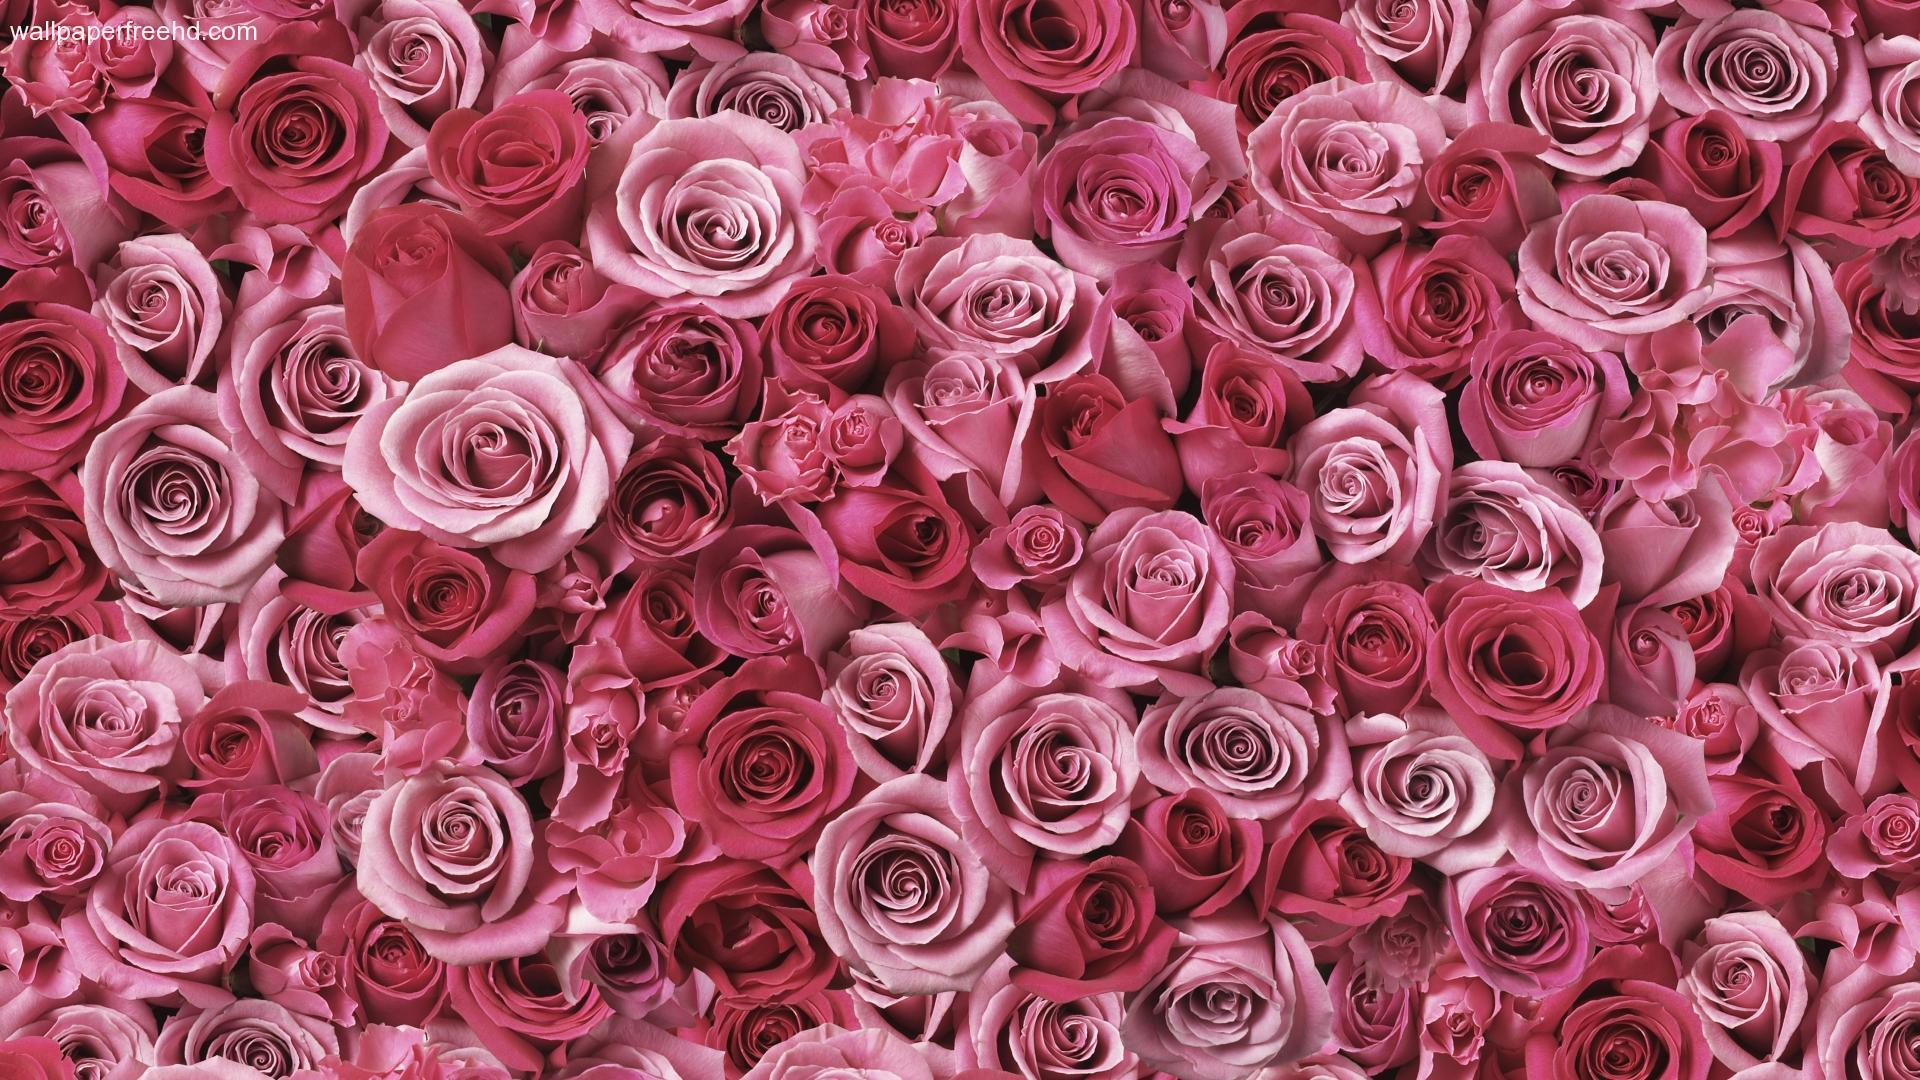 pink roses wallpaper hd free download wallpaper desktop backgrounds